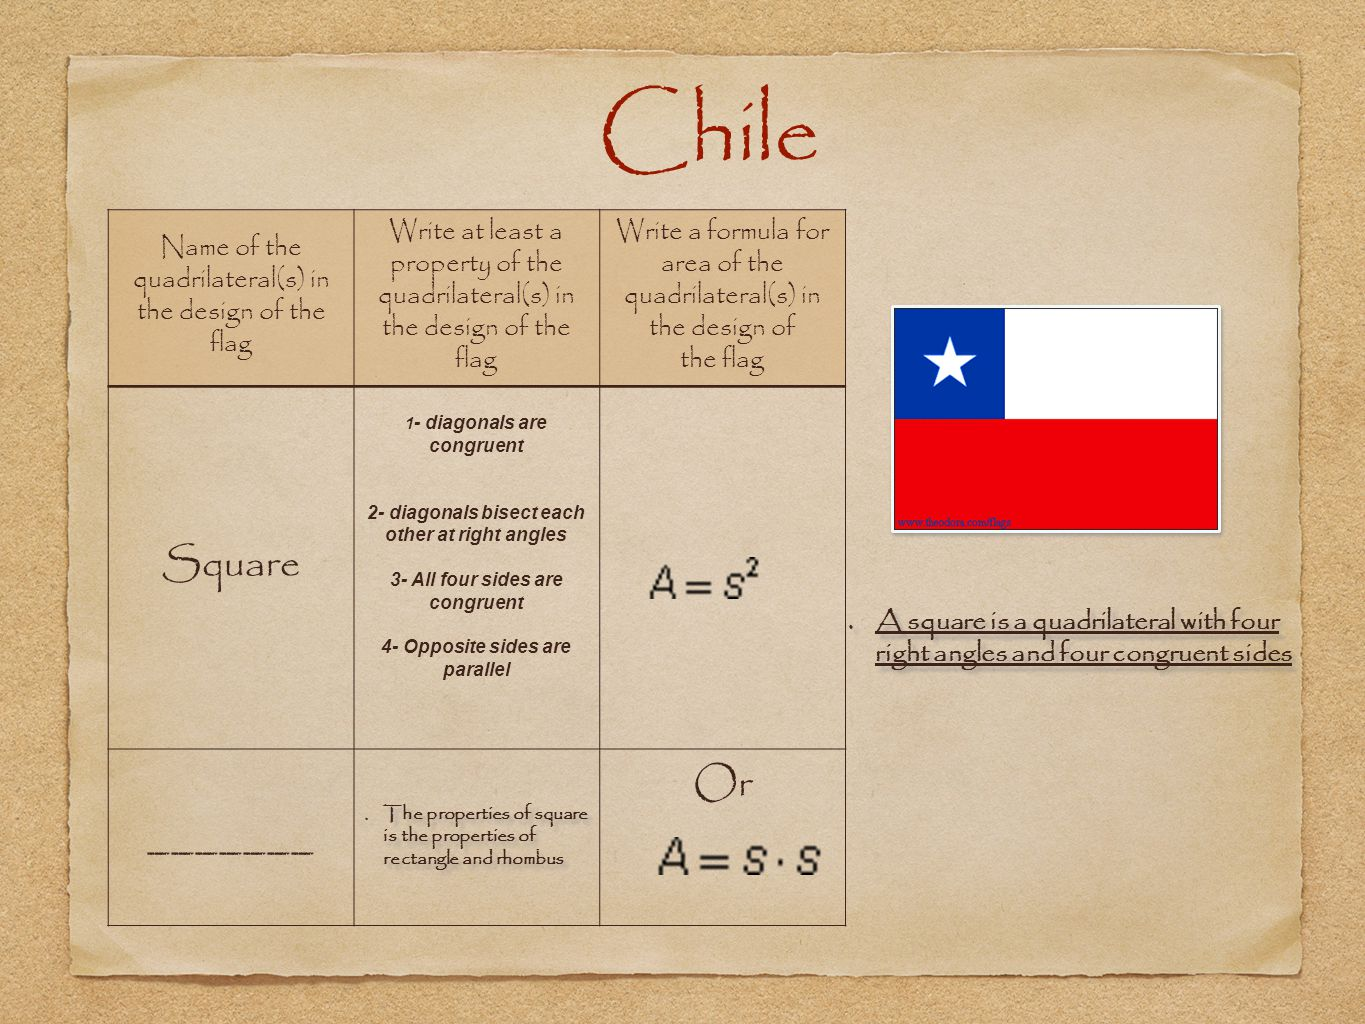 Chile Name of the quadrilateral(s) in the design of the flag Write at least a property of the quadrilateral(s) in the design of the flag Write a formu